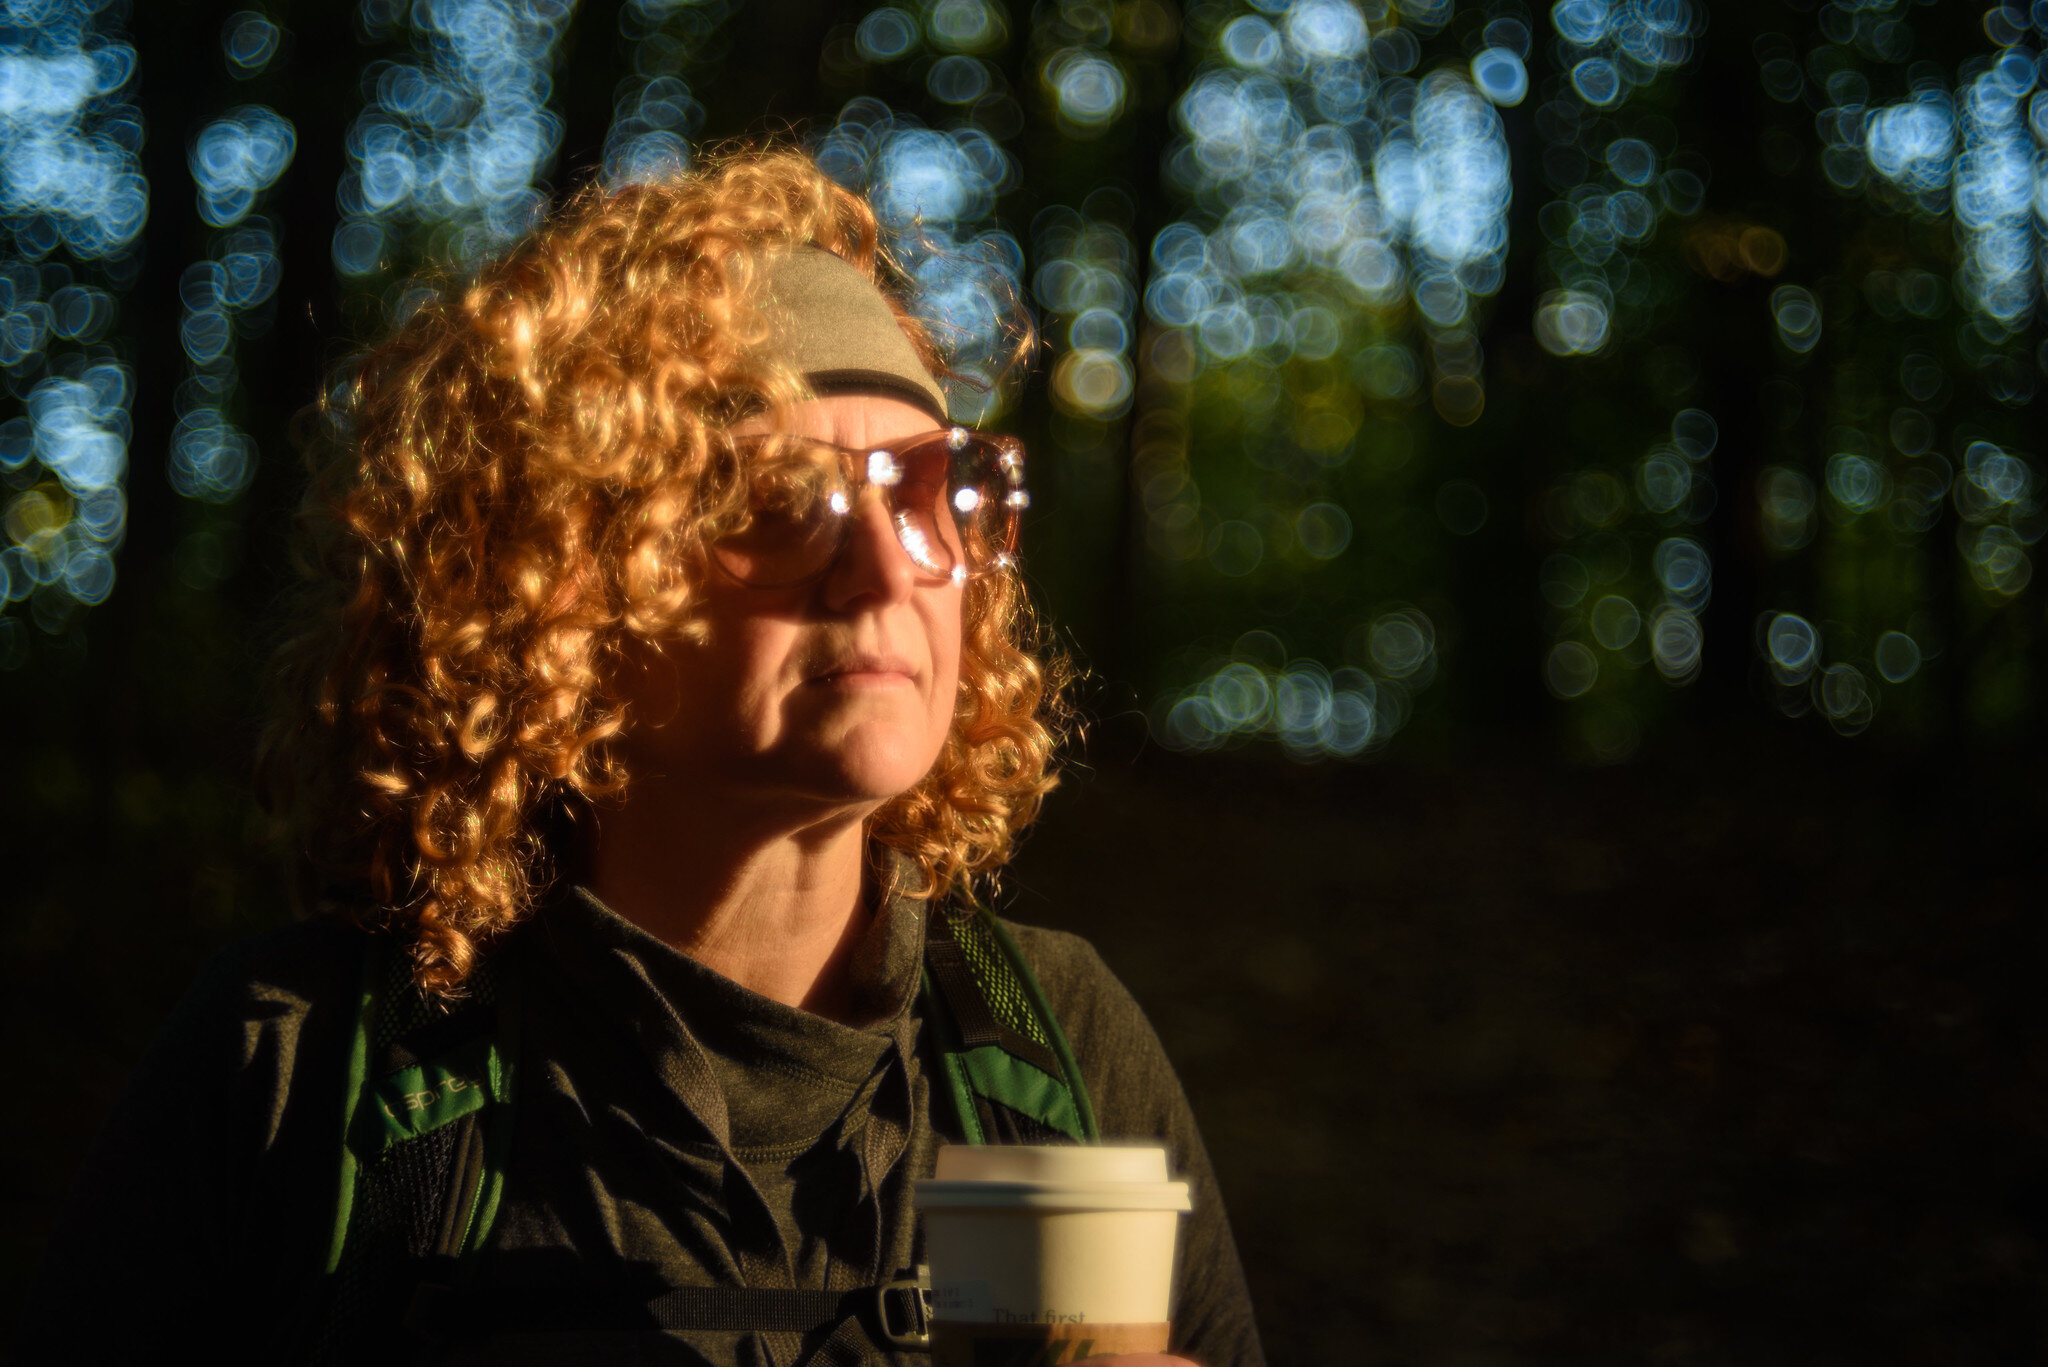 Renee hiking at Germantown Reserve last weekend. This was just after sunrise, and the sun was putting a shaft of light thru the trees lighting her. Shot at approximately f/5.6. Note the swirly Bokeh balls in the background and how they become a little more oblong at the edges. This is a characteristic of both lenses to varying degrees. Renee hates this shot so don't tell her I used it.